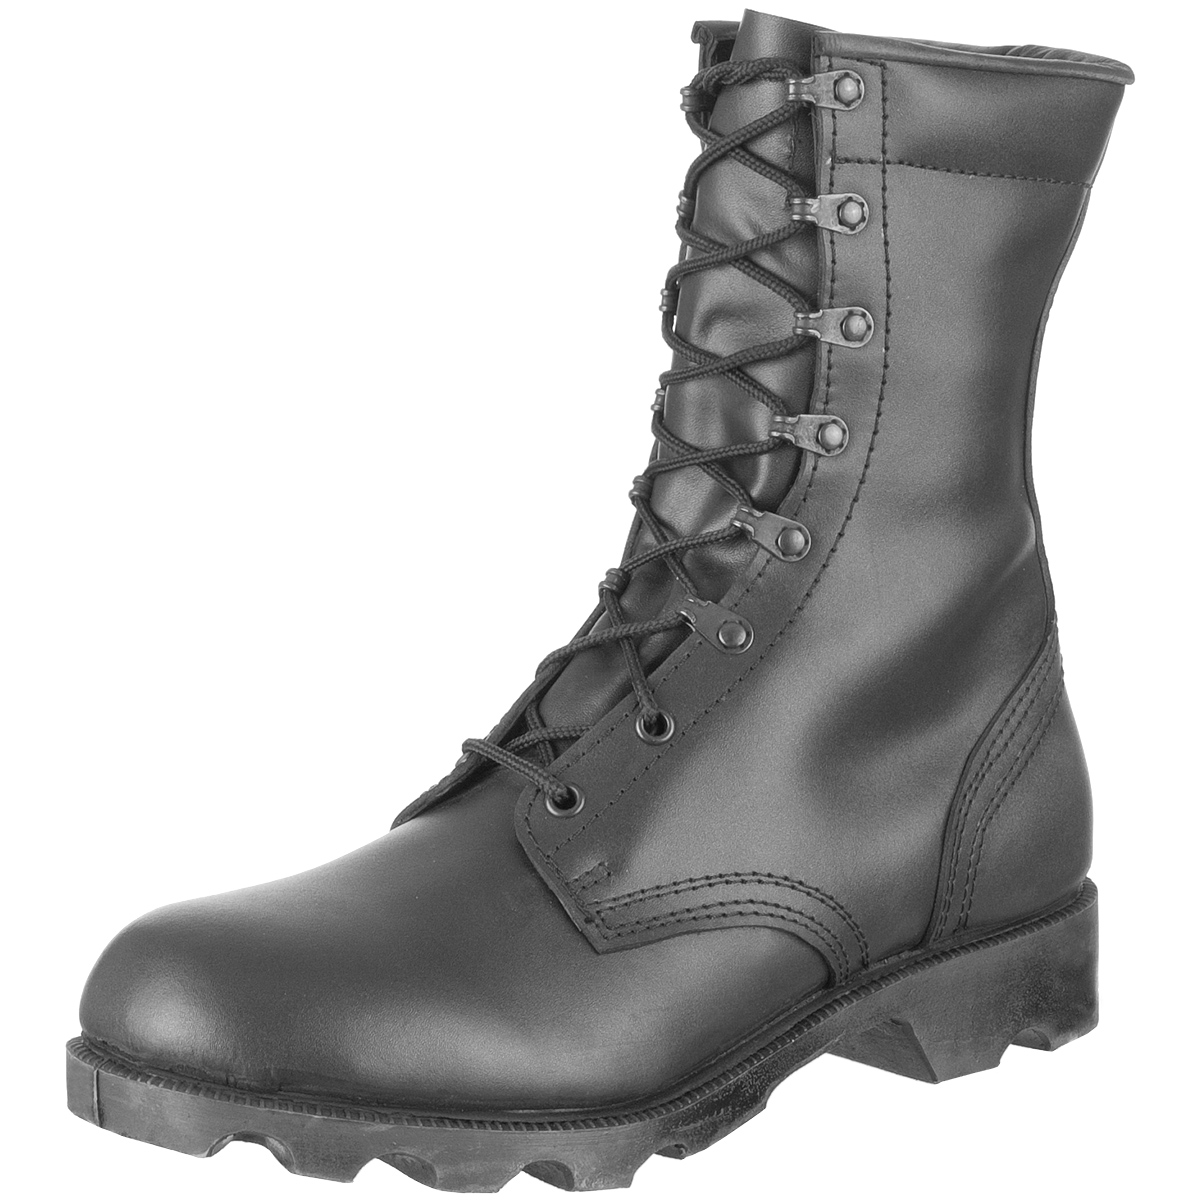 Military Boots, Army Boots, Combat Boots manufacturer / supplier in China, offering Black Genuine Leather New fashion Quickwear Military Footwear Military, High Ankle Black Genuine Leather Military Boots, ISO Standard Assorted Color Black Beige Military Boots and so on.